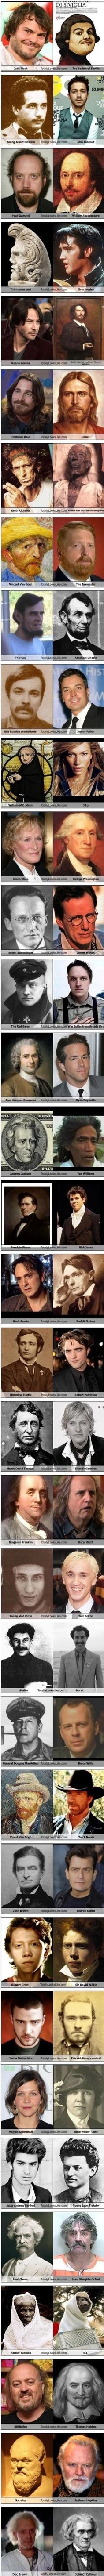 Separated by time: Celebrities who look like historical people.  Keith Richards is my fav.  LOL